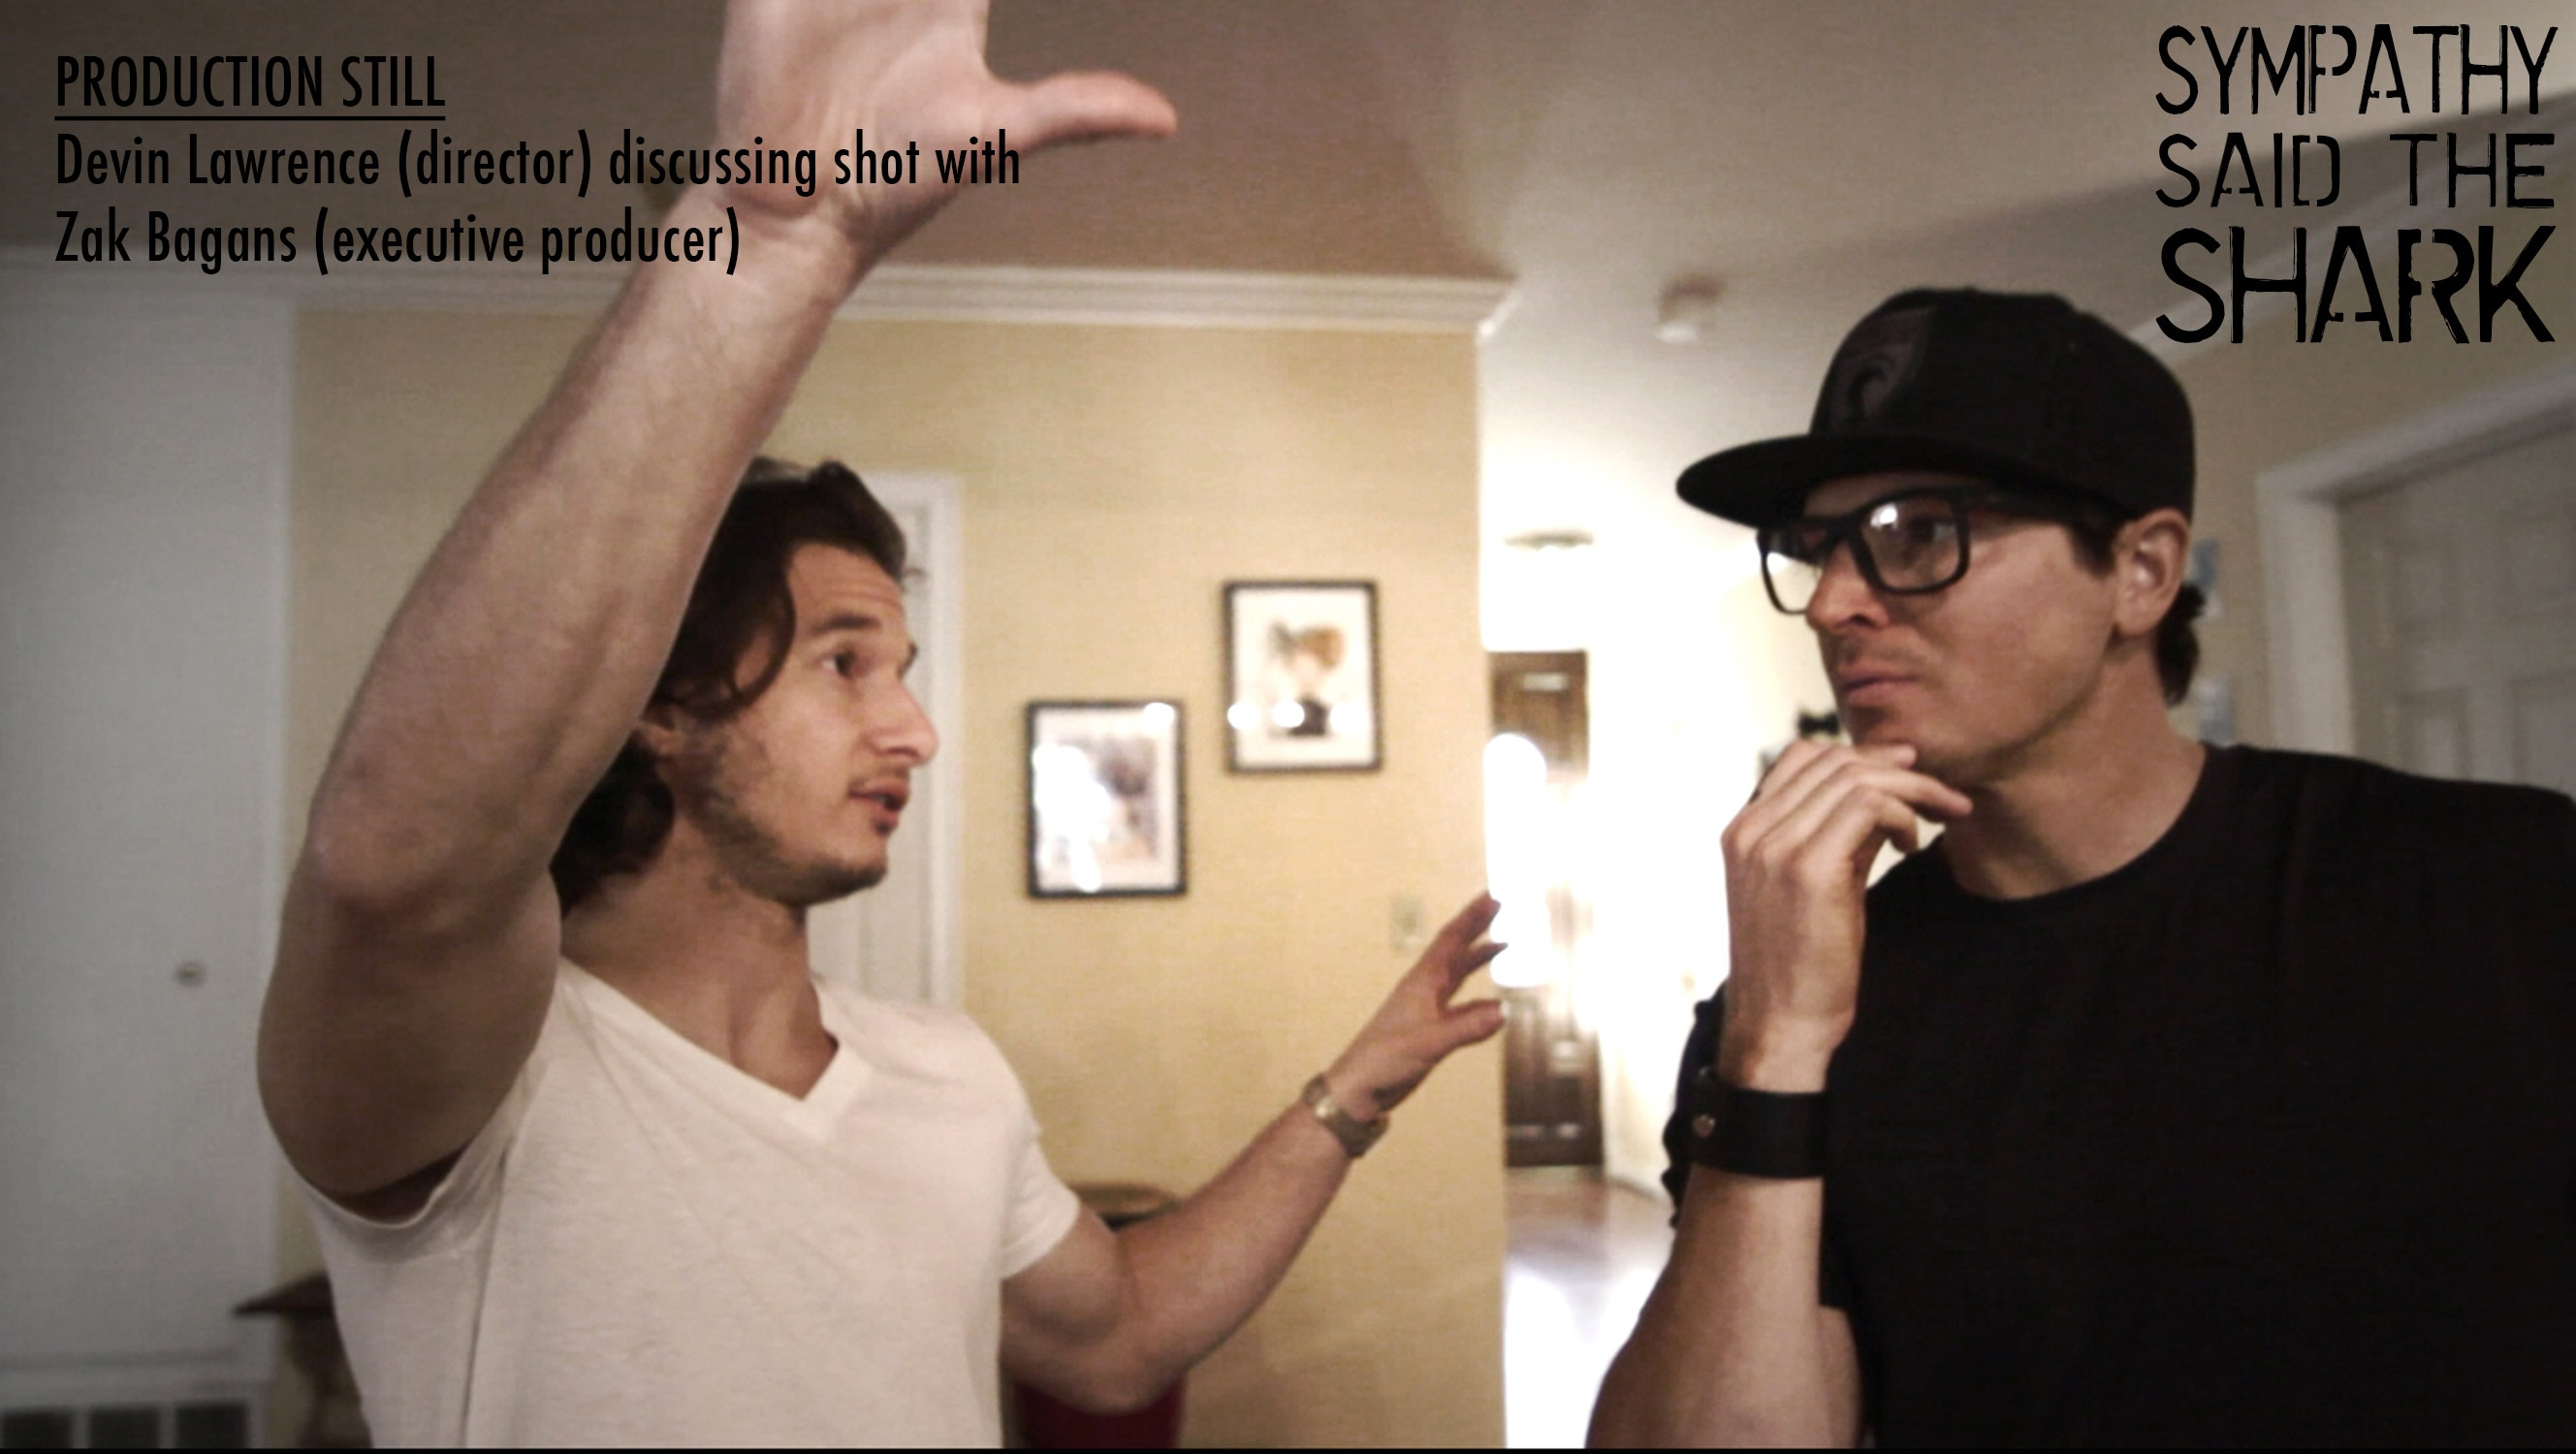 Devin Lawrence and Zak Bagans